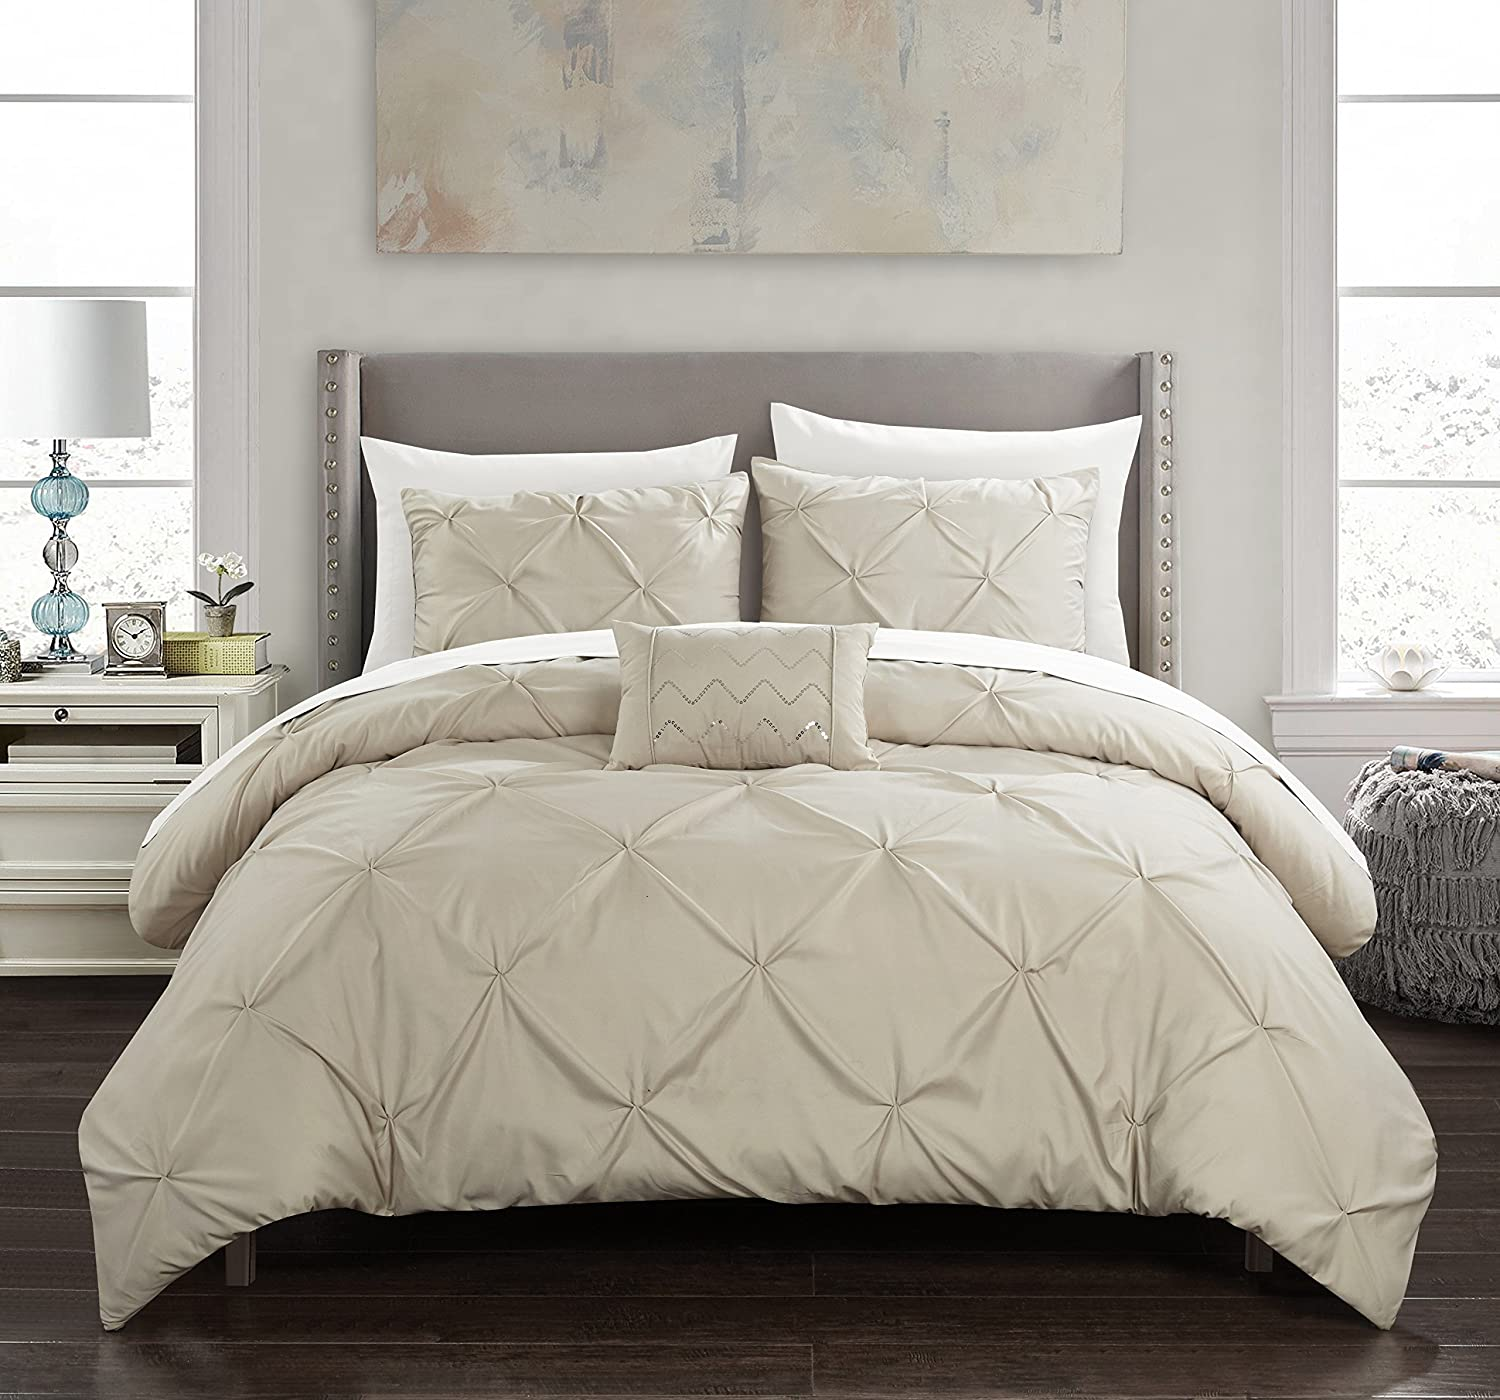 Chic Home Daya 4 Piece Duvet Cover Set Pinch Pleat Ruffled Design Embellished Zipper Closure Bedding - Decorative Pillow Shams Included, King, Taupe